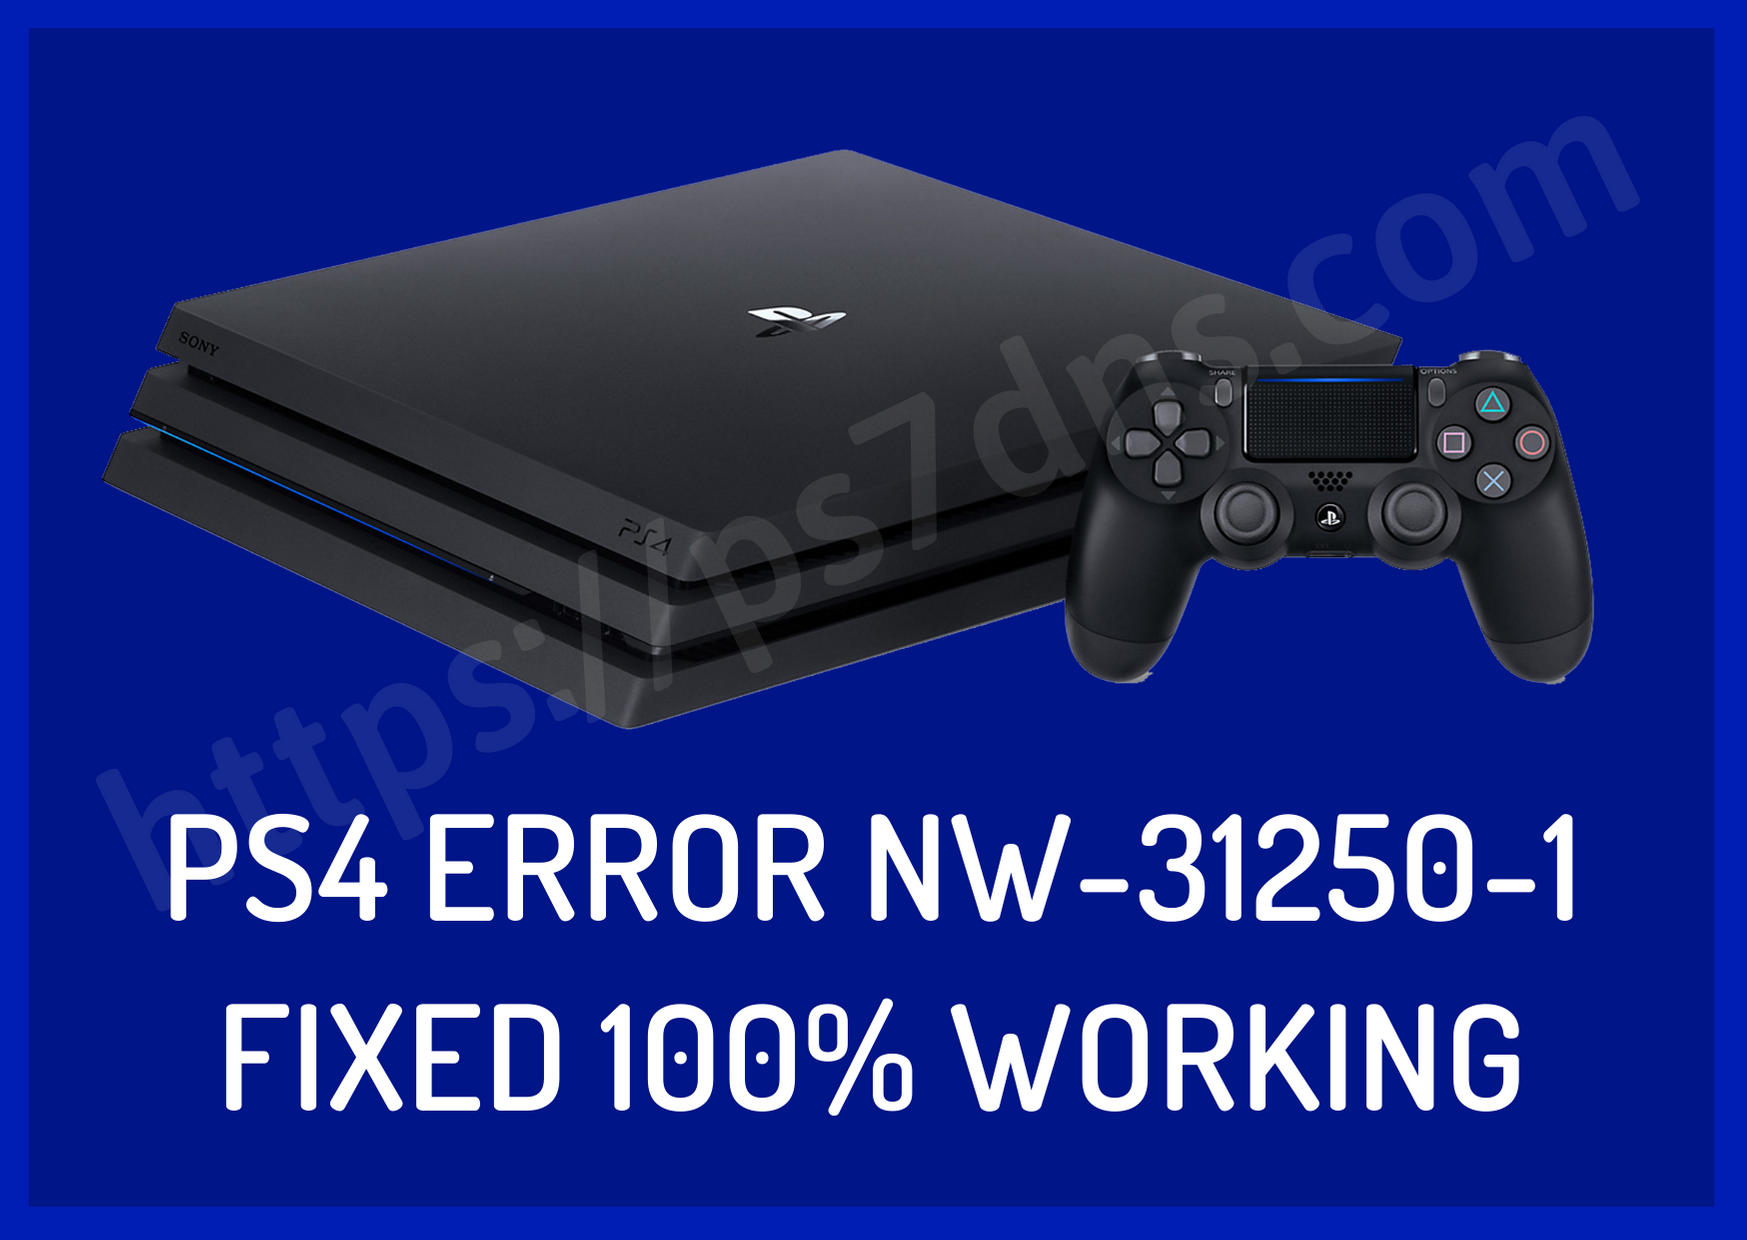 PS4 Error NW-31250-1 Fixed 100% Working